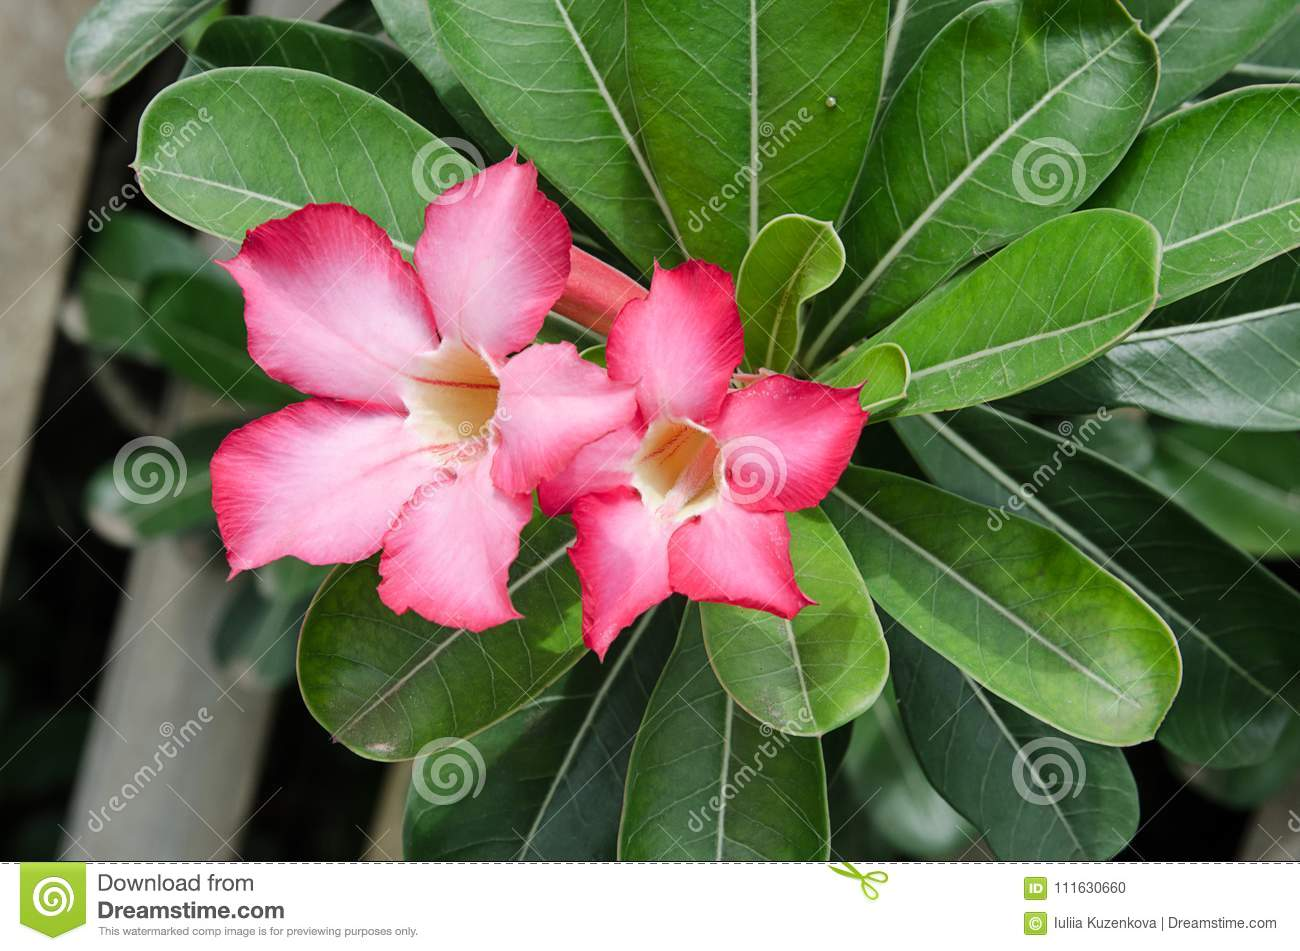 Beautiful Desert Rose Flower In The Garden With Blurry Green Leaf In